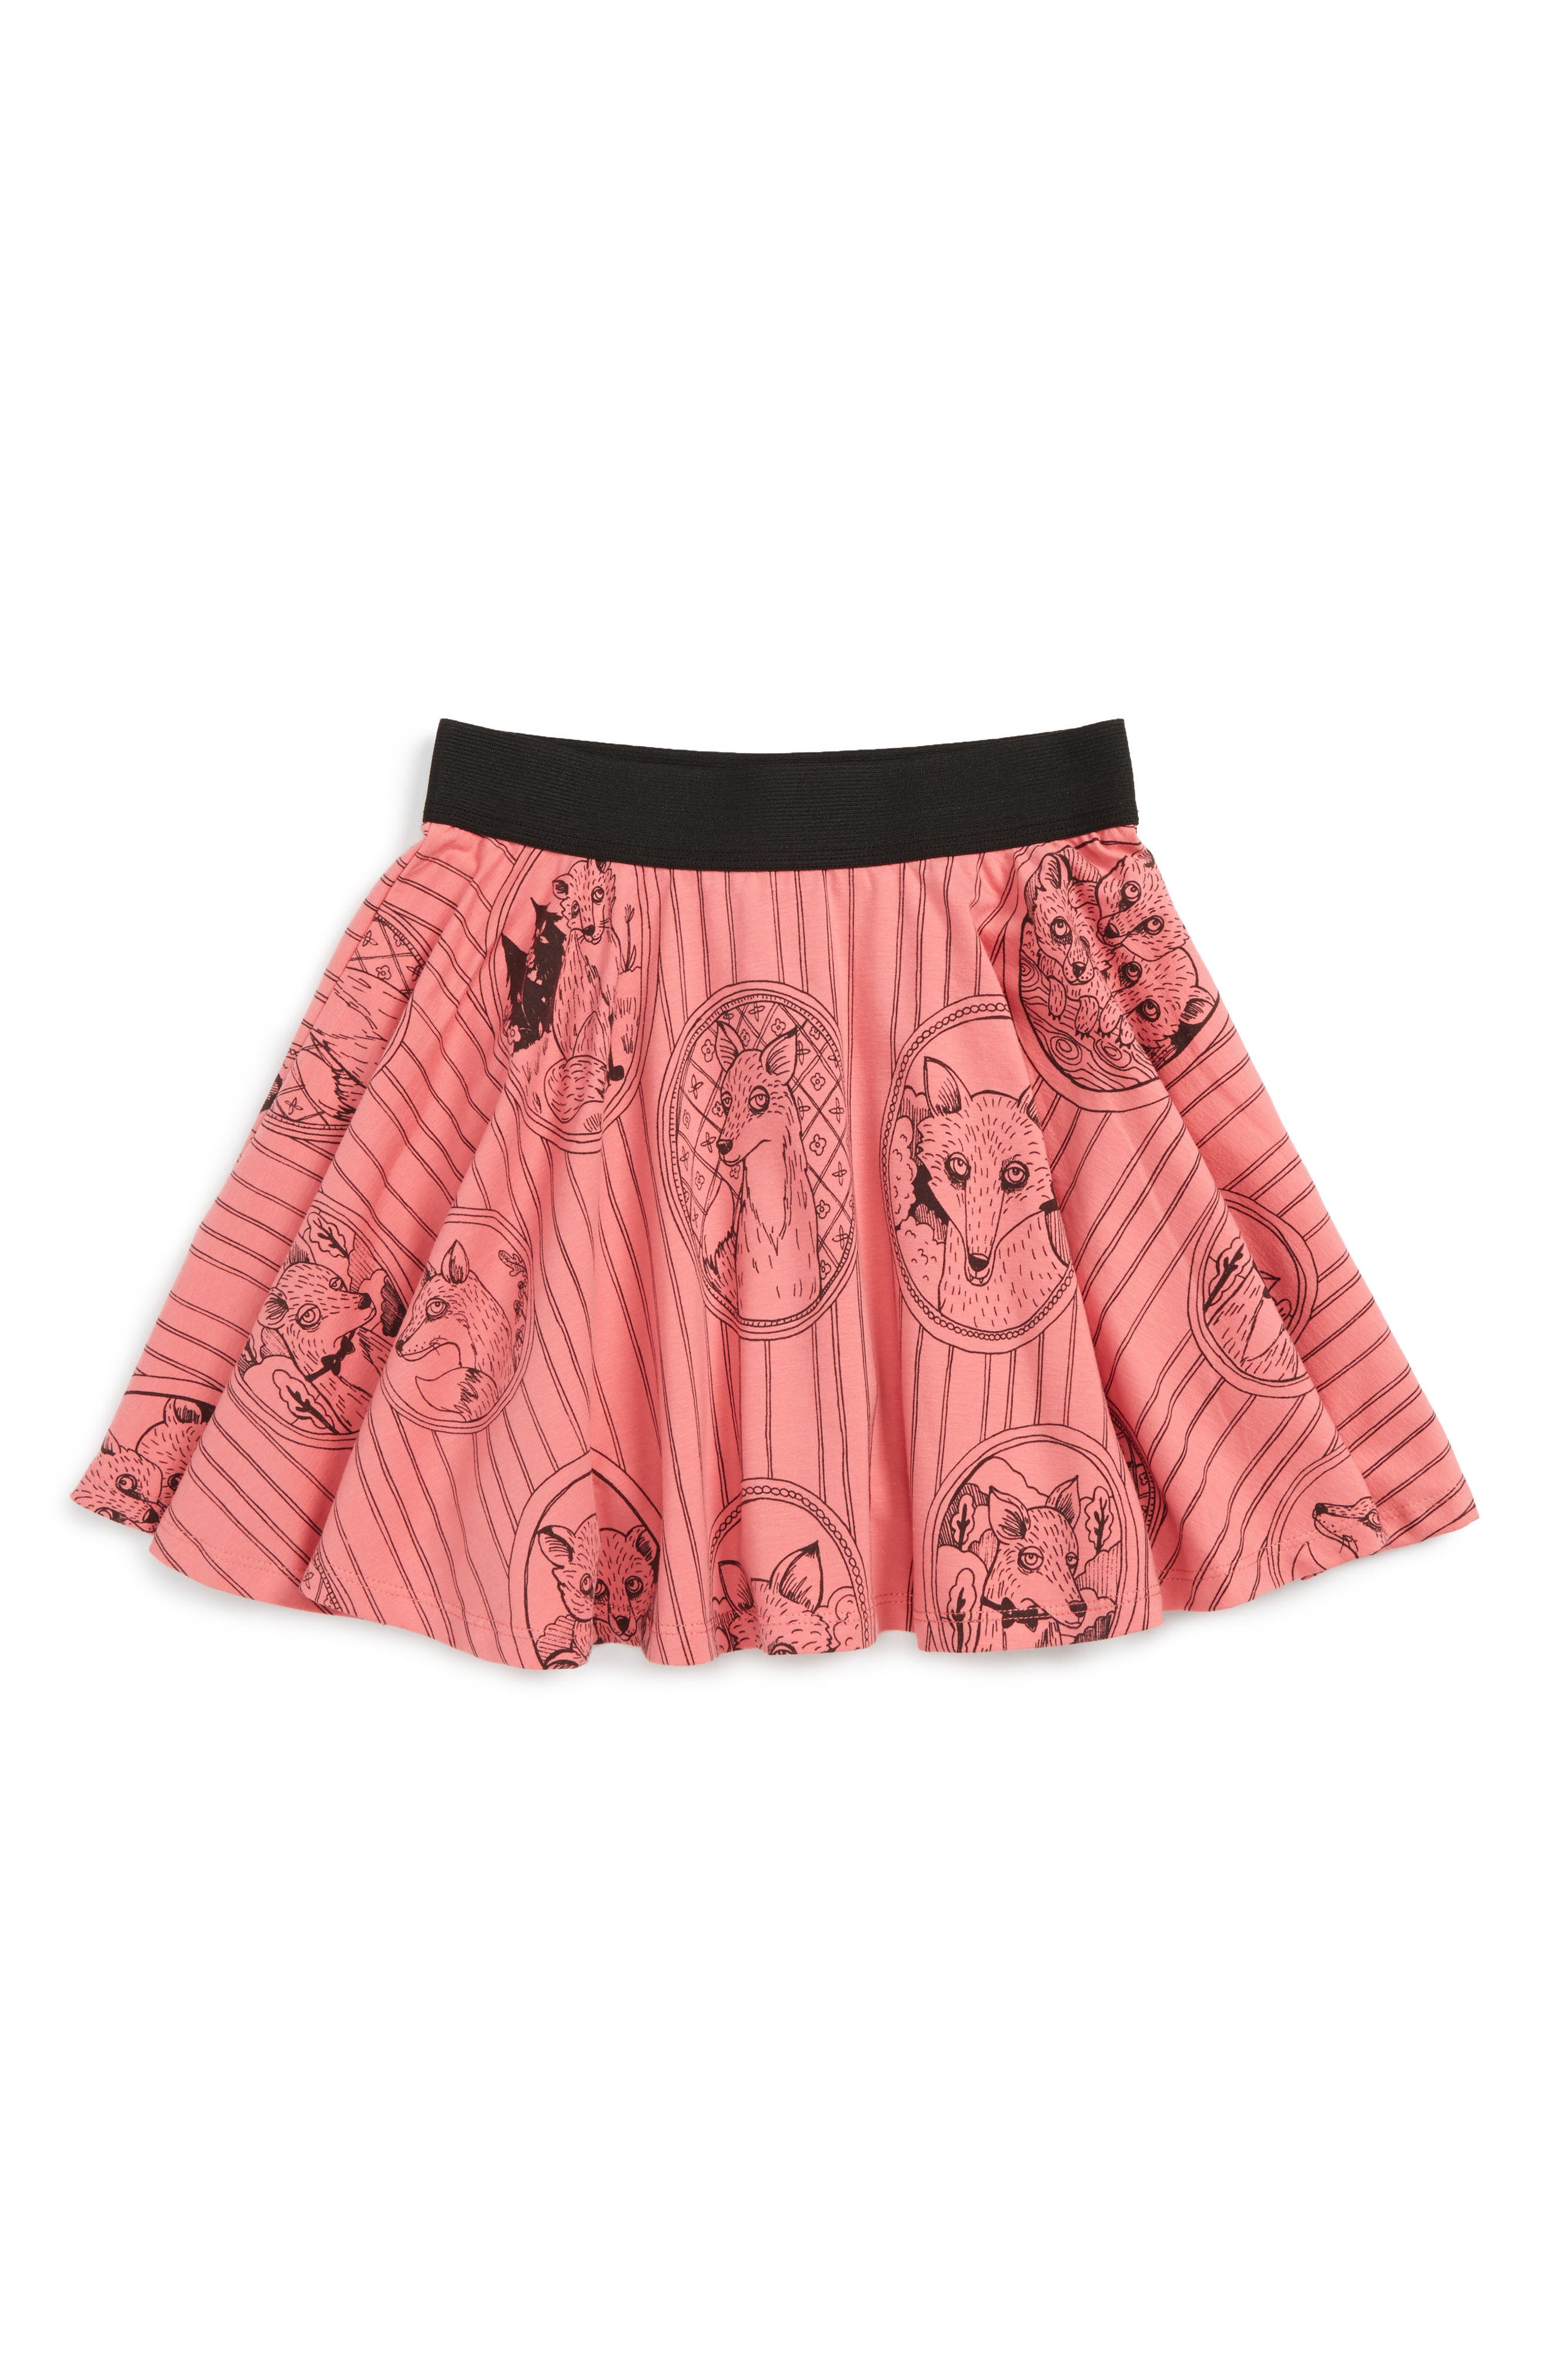 Fox Family Skirt,                         Main,                         color, 650